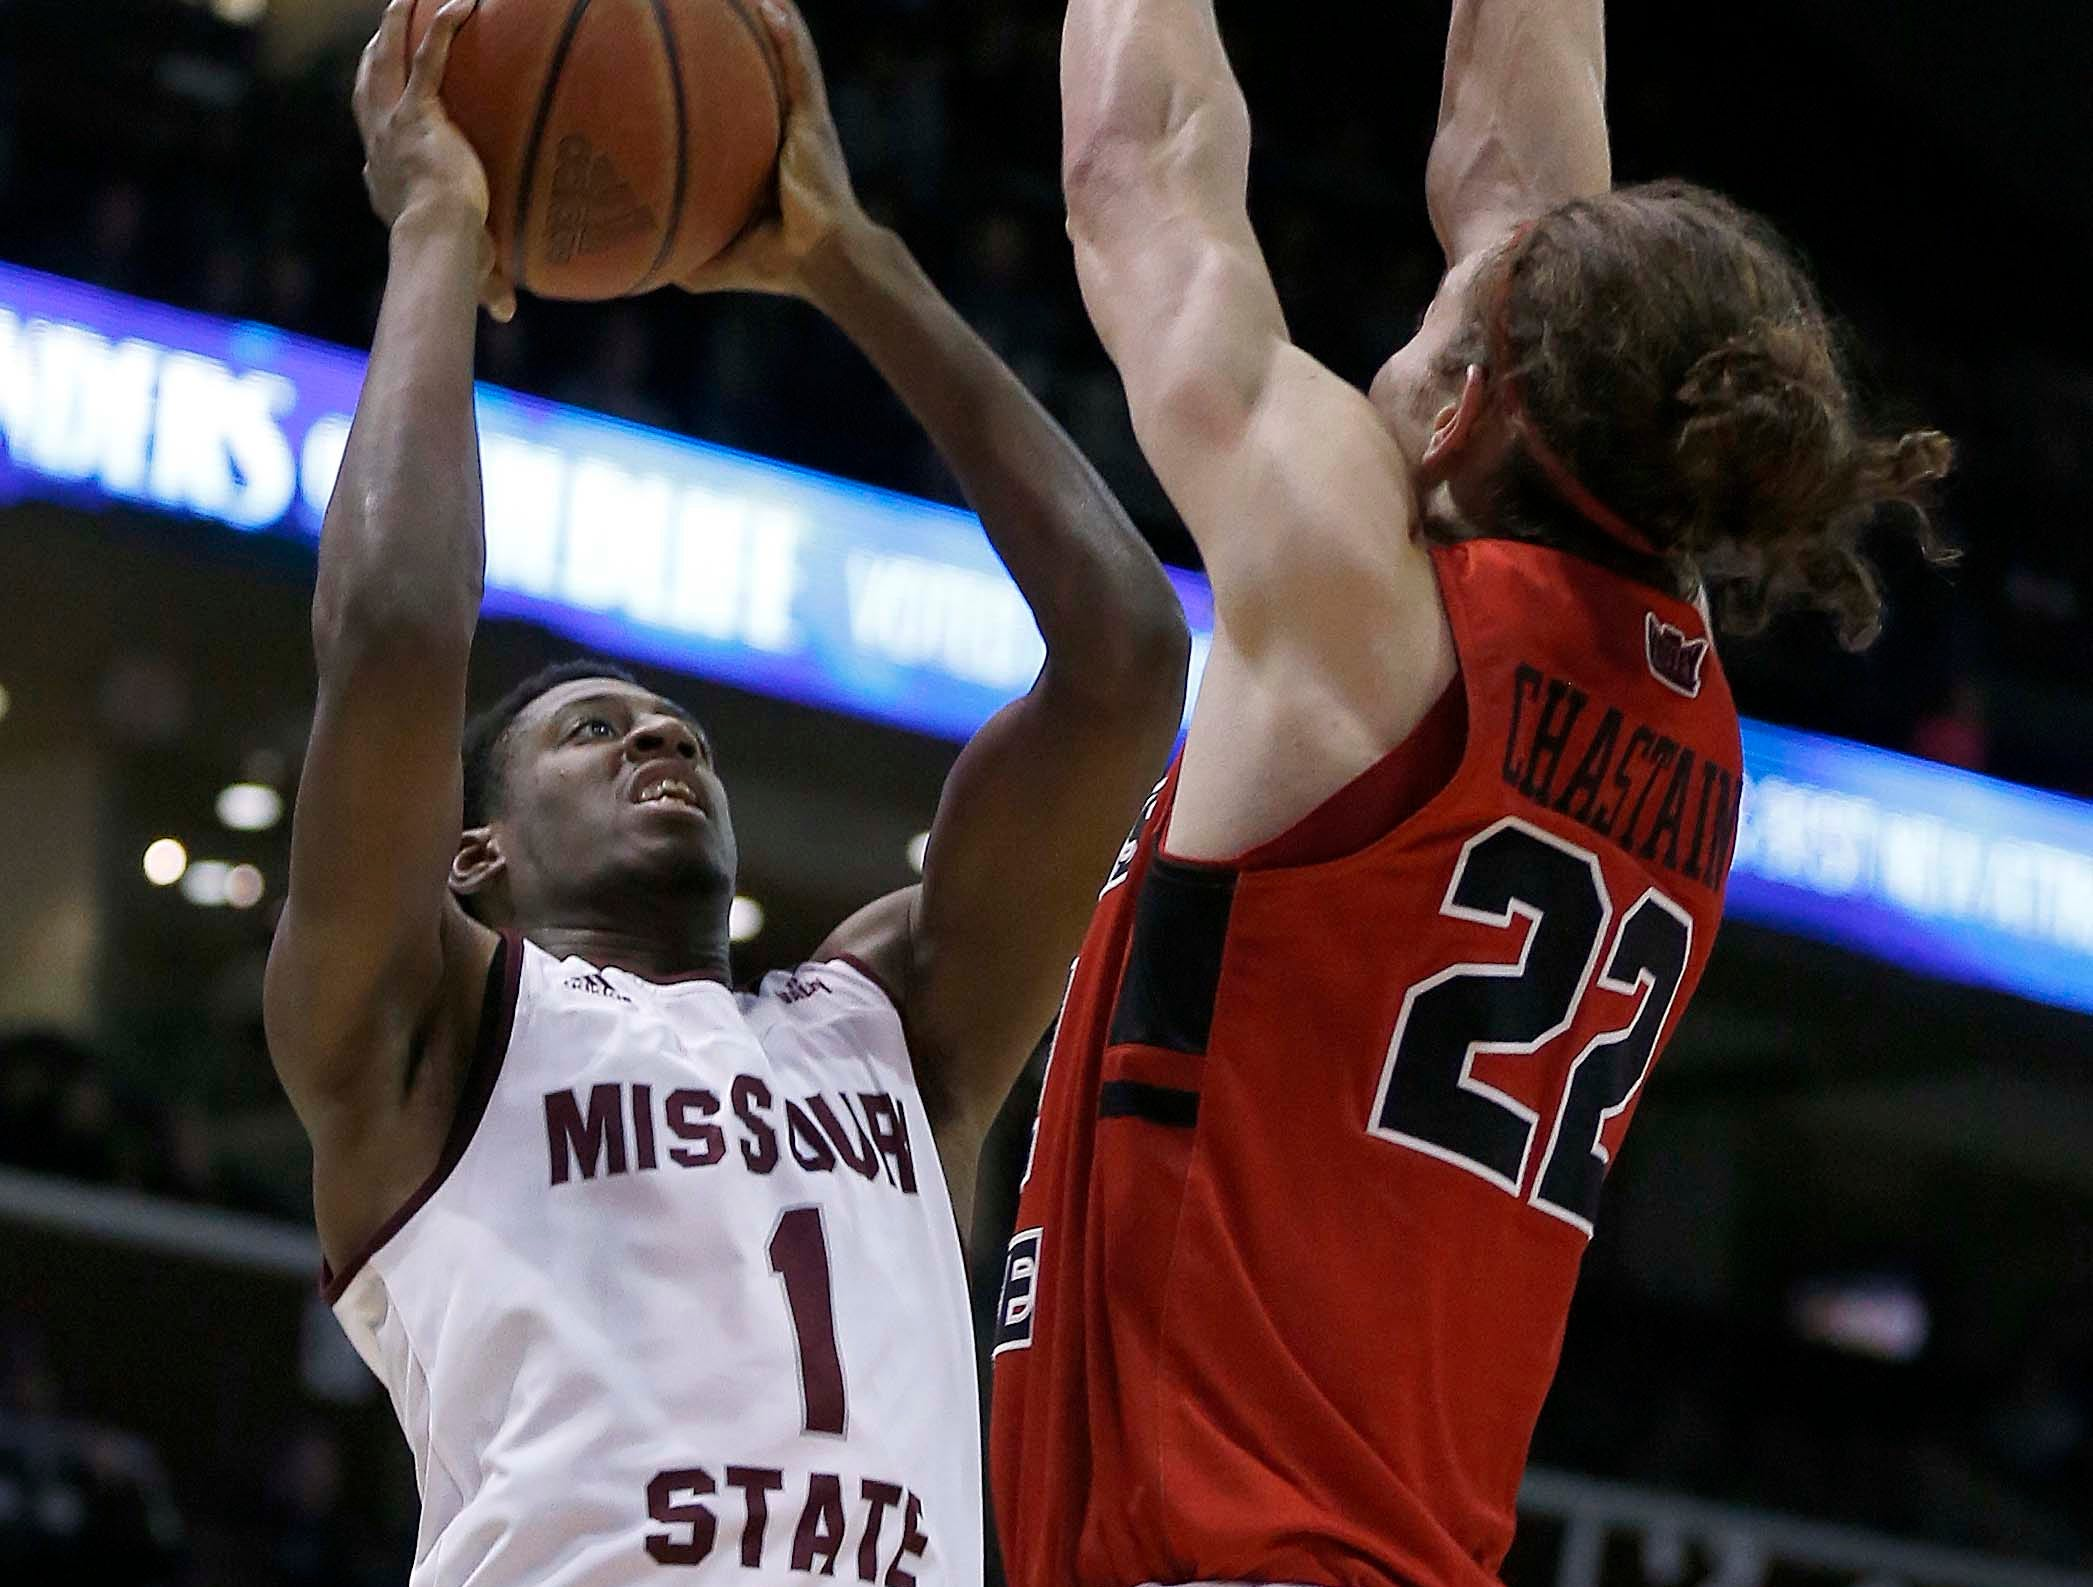 Missouri State against the Illinois State Redbirds at JQH Arena in Springfield on Feb. 10, 2019.